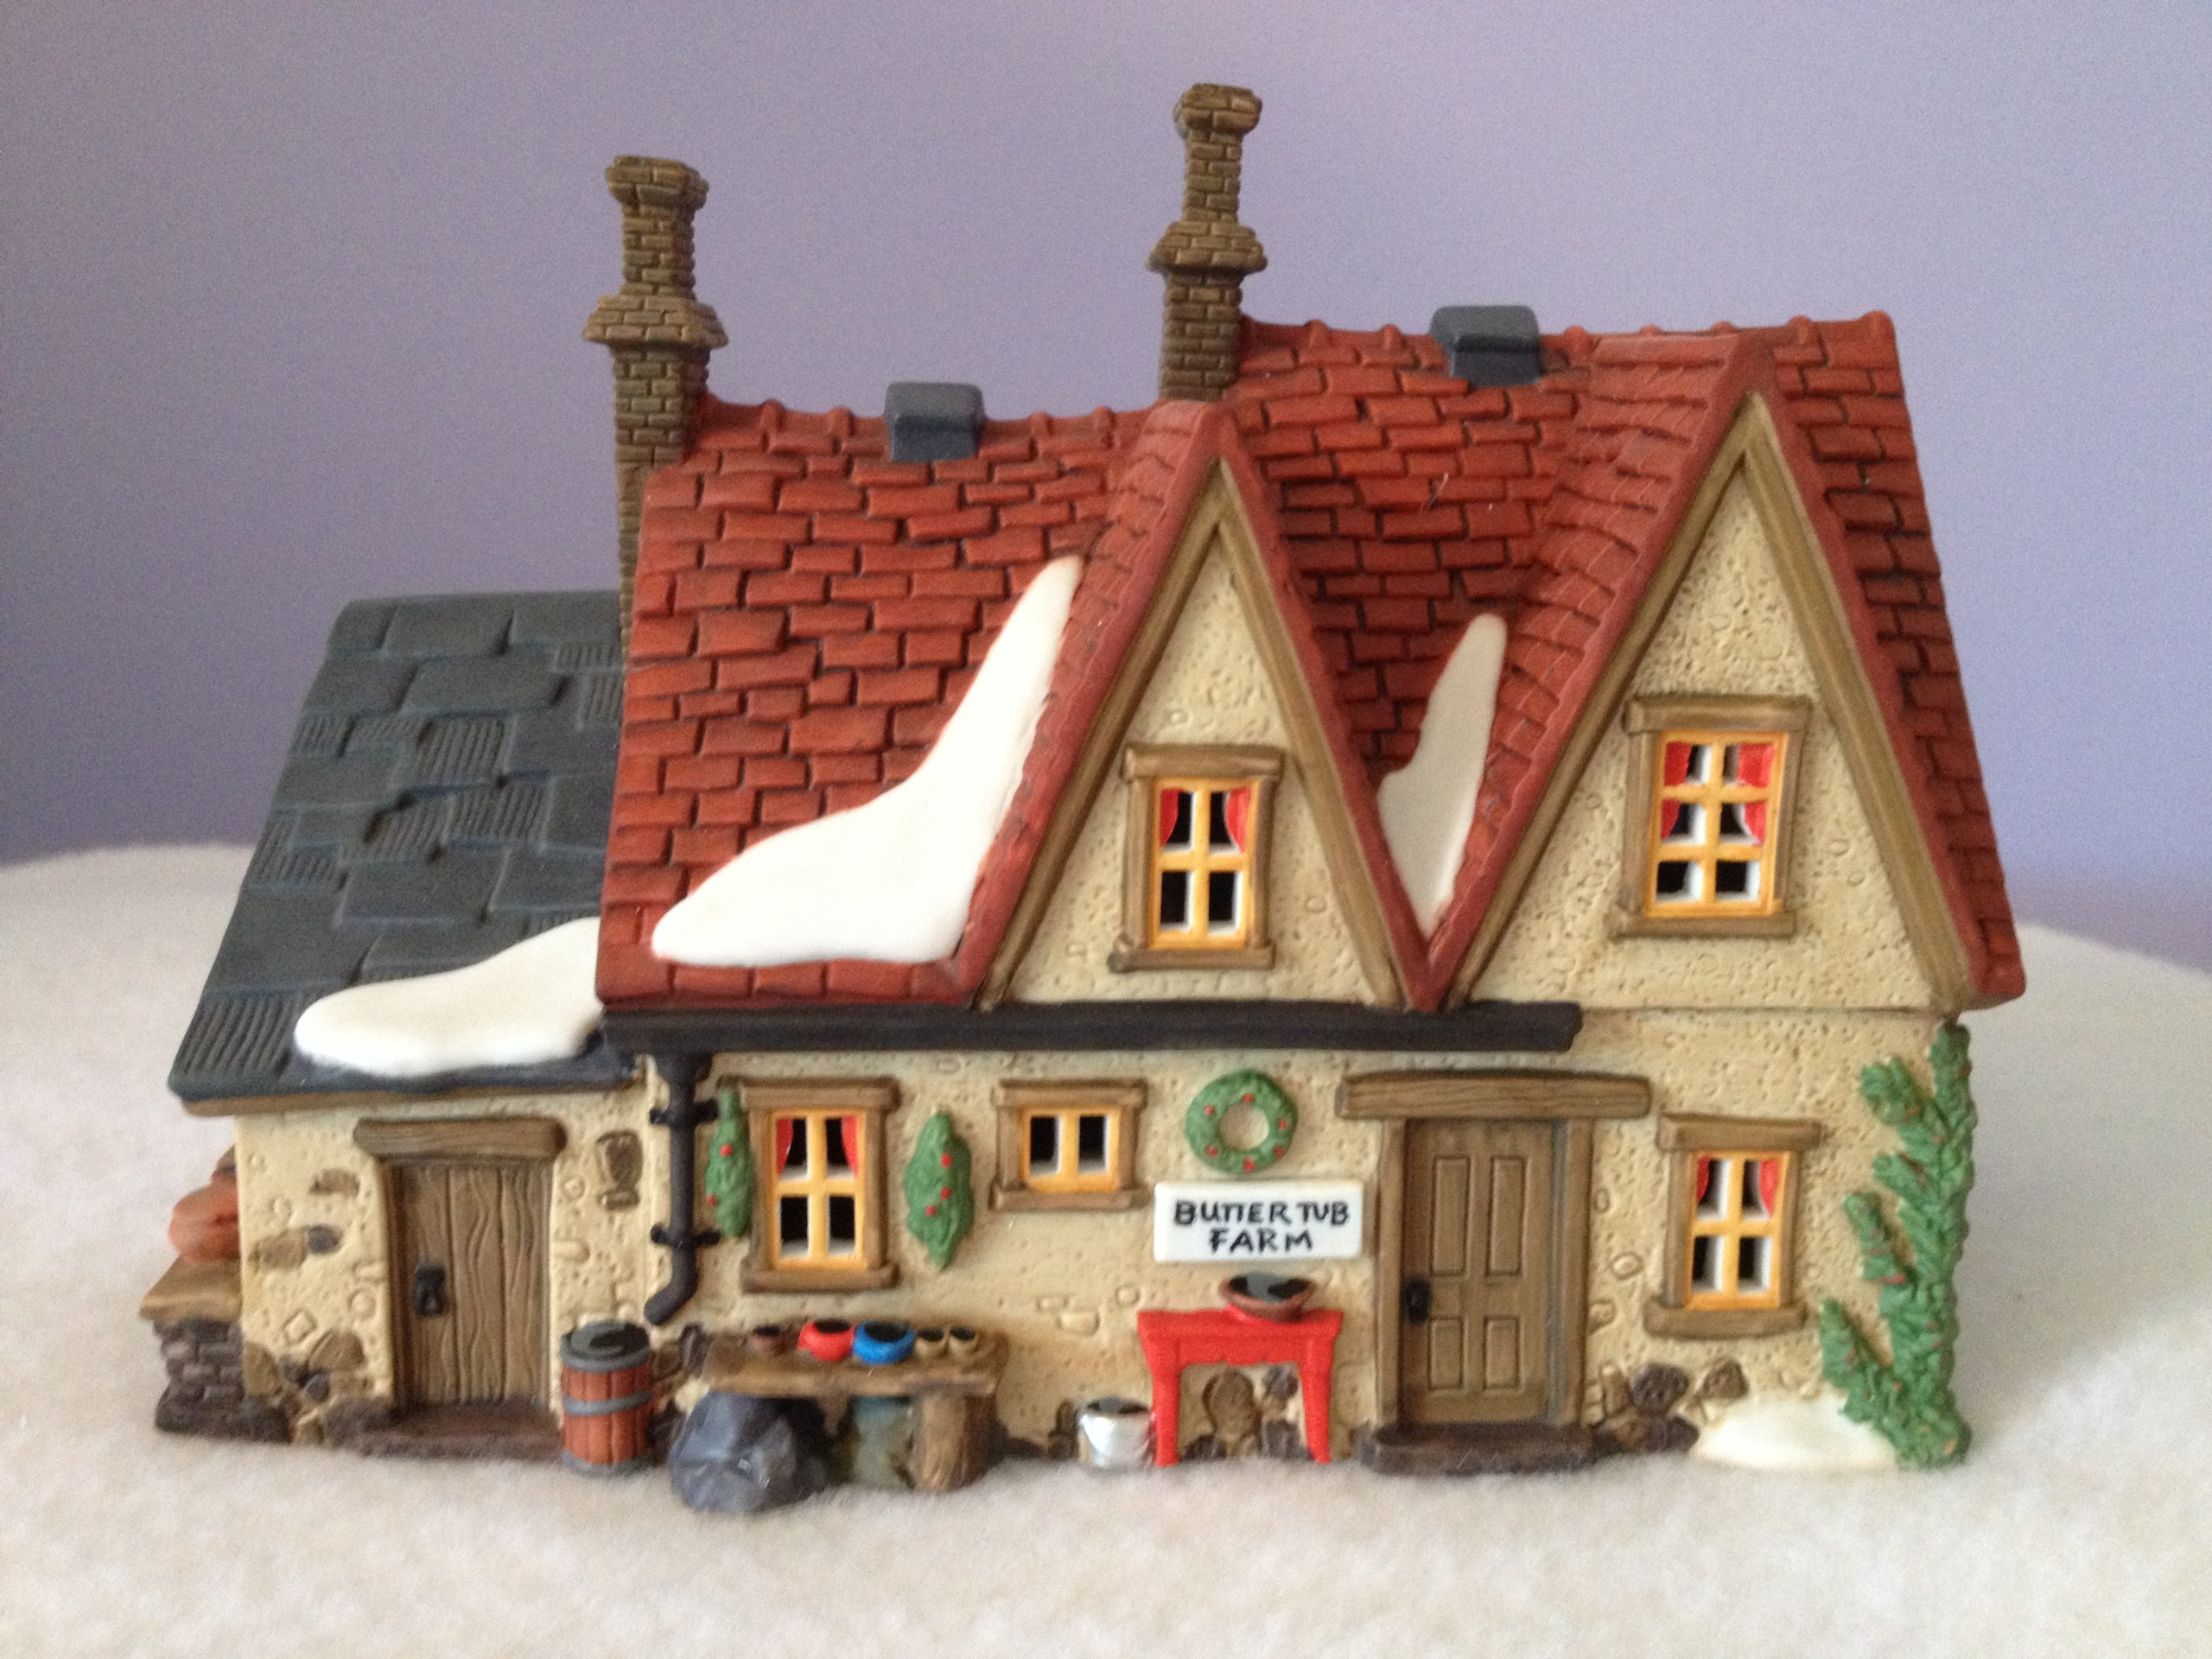 Department 56 ''Butter Tub Farmhouse'' Retired Dickens Village Series by Department 56